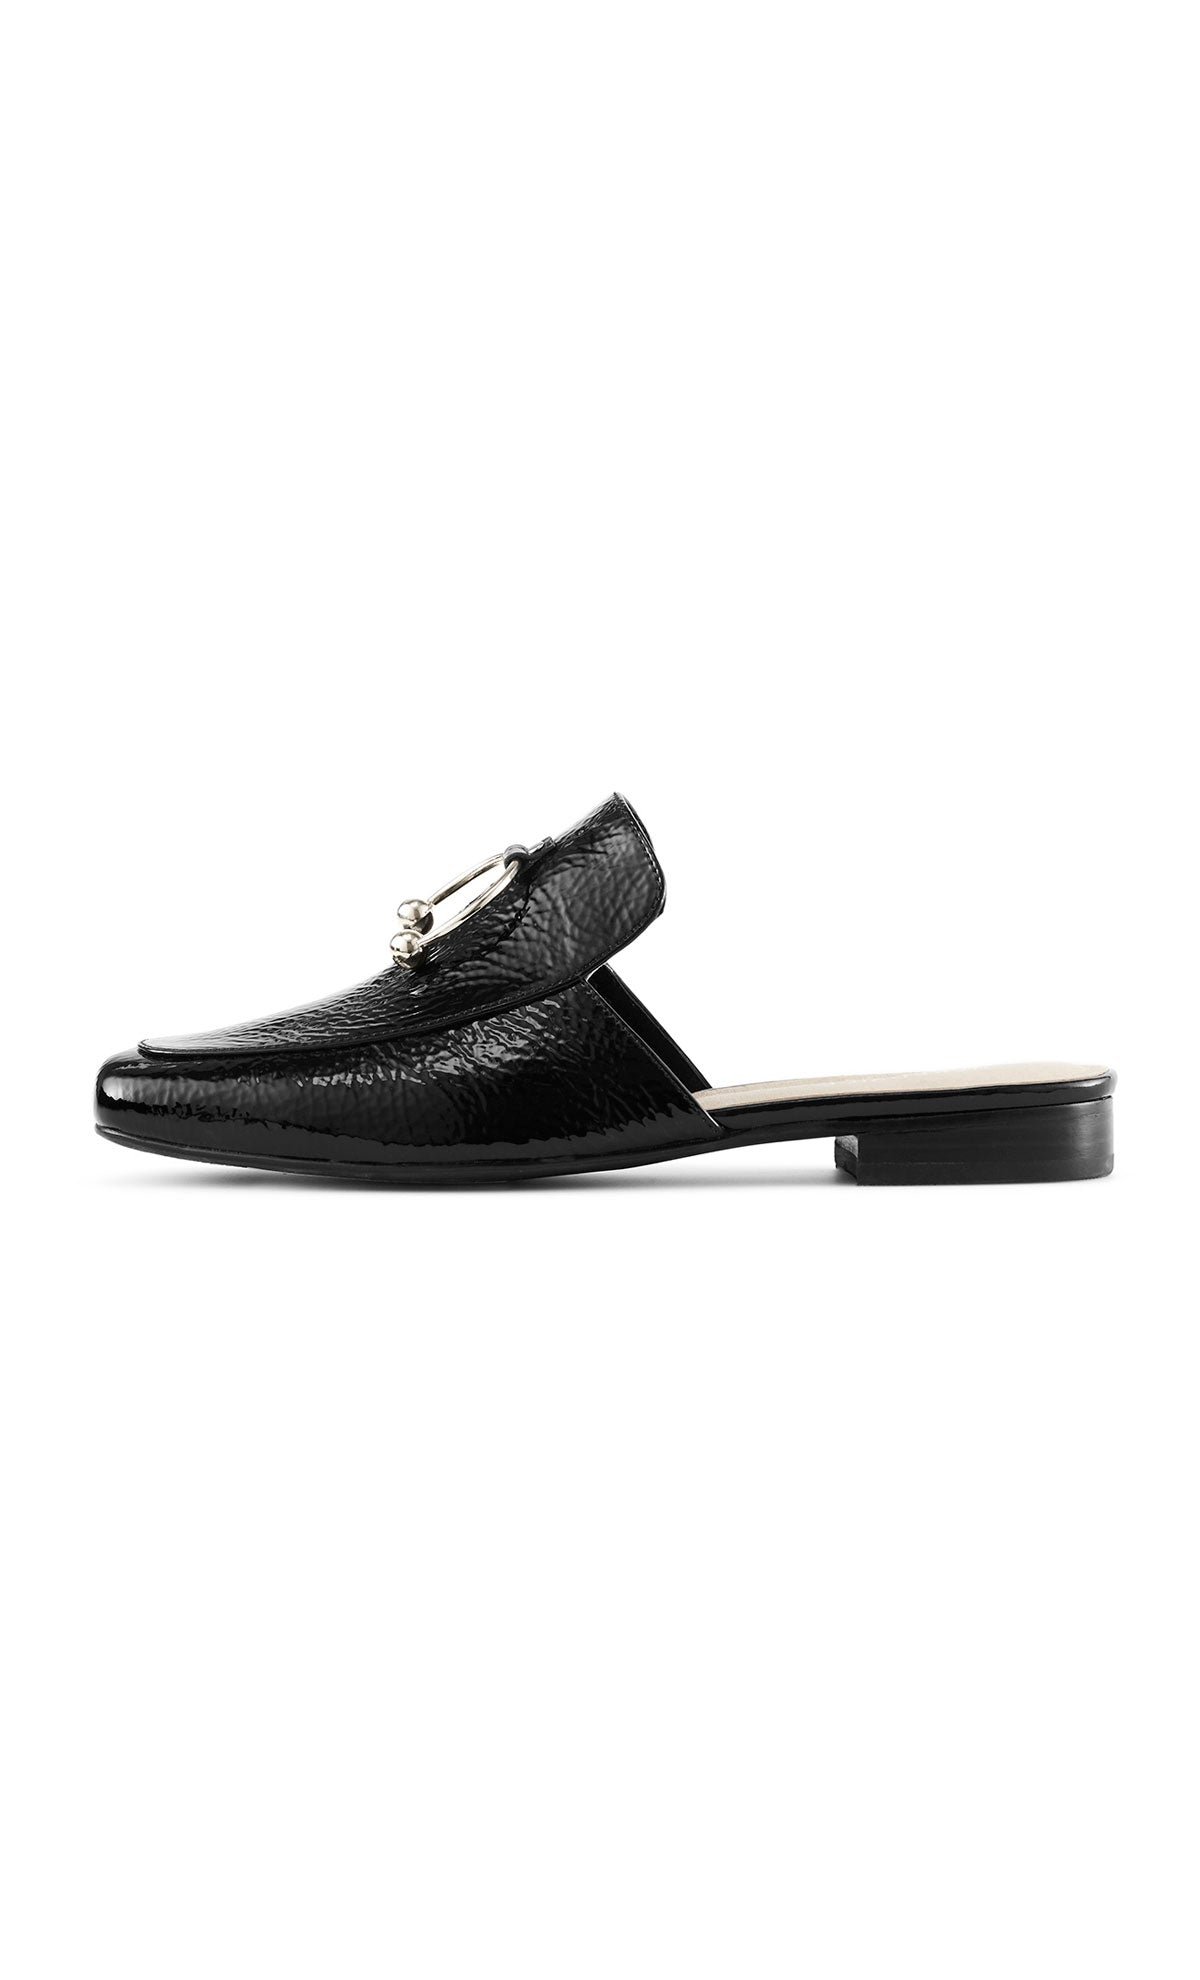 The Maya Patent Leather Slide | Black